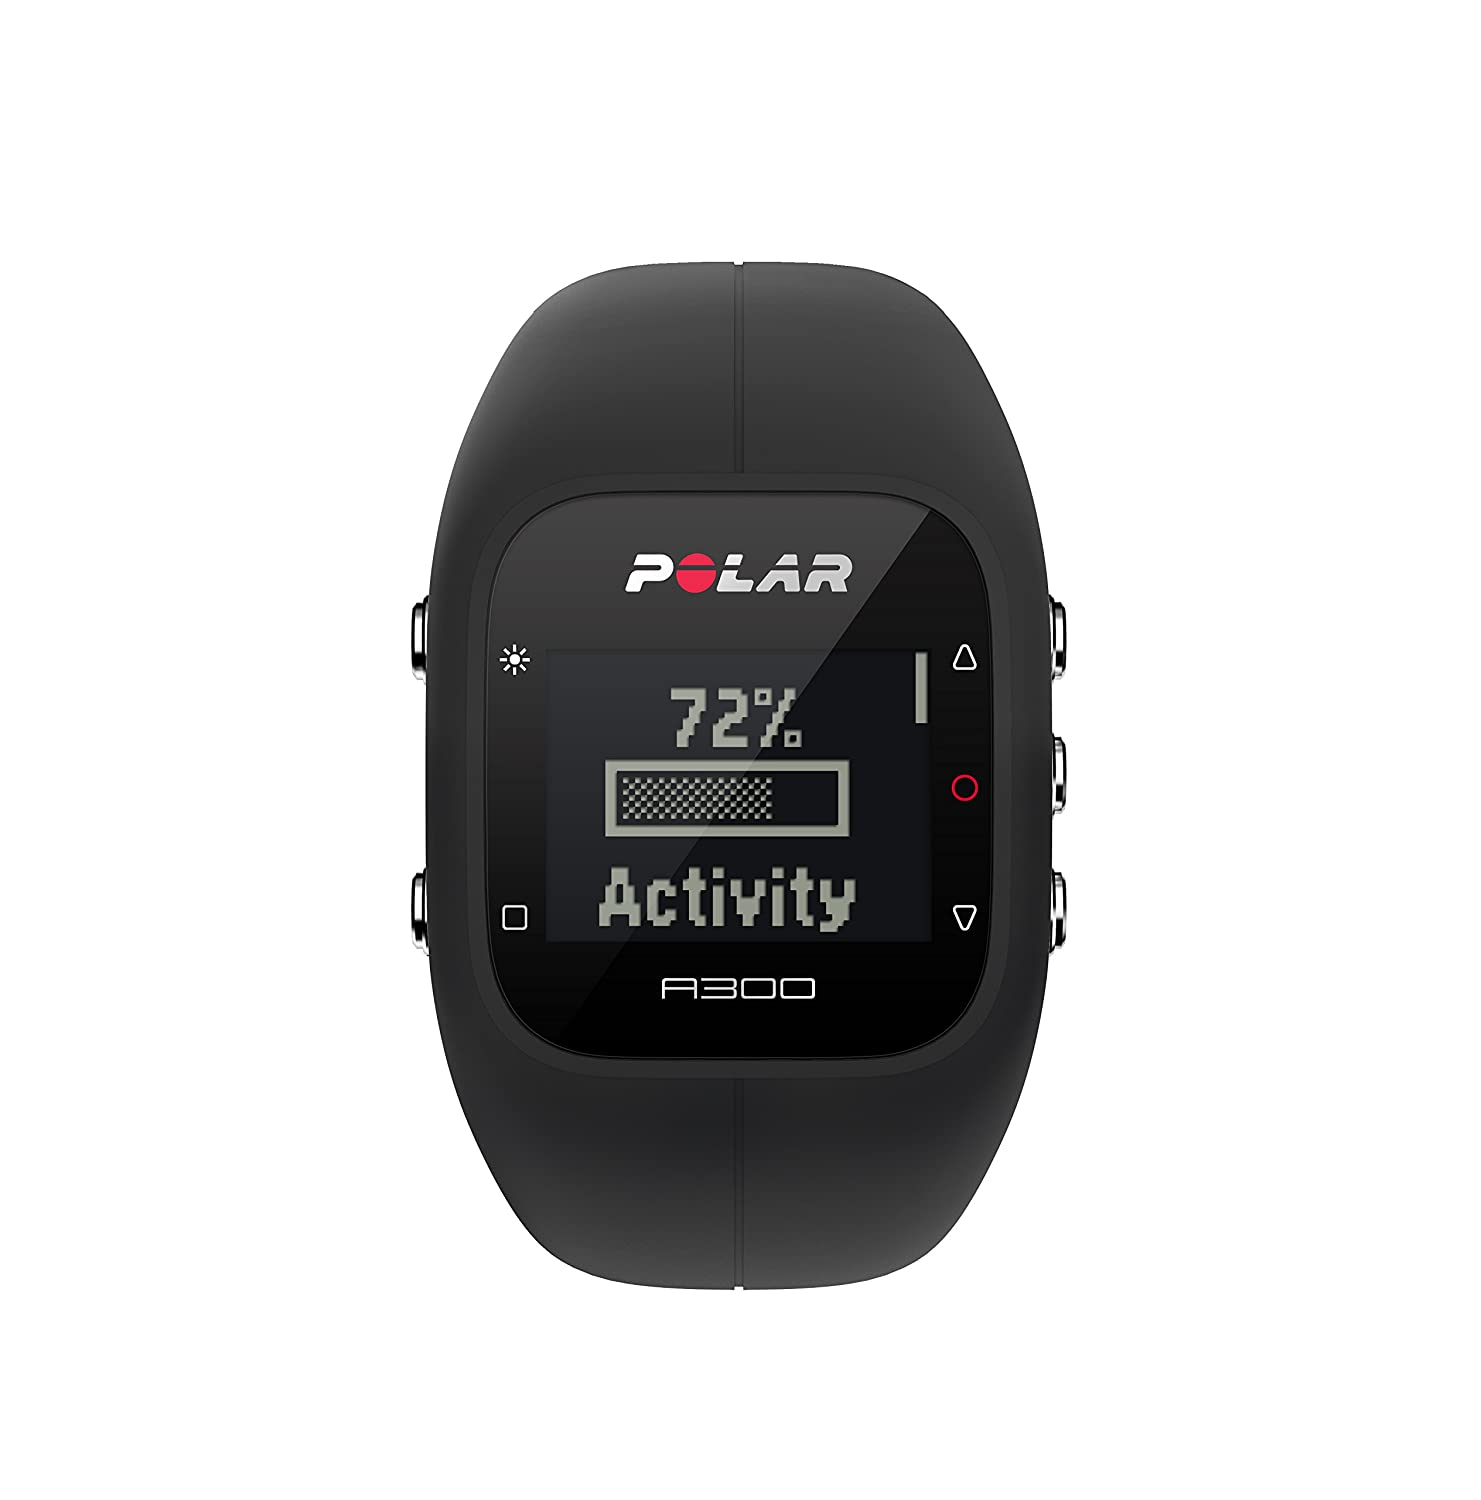 Gen x labs sports amp fitness performance kit 11 week program 4 - Amazon Com Polar A300 Fitness Tracker And Activity Monitor With Heart Rate Black Sports Outdoors